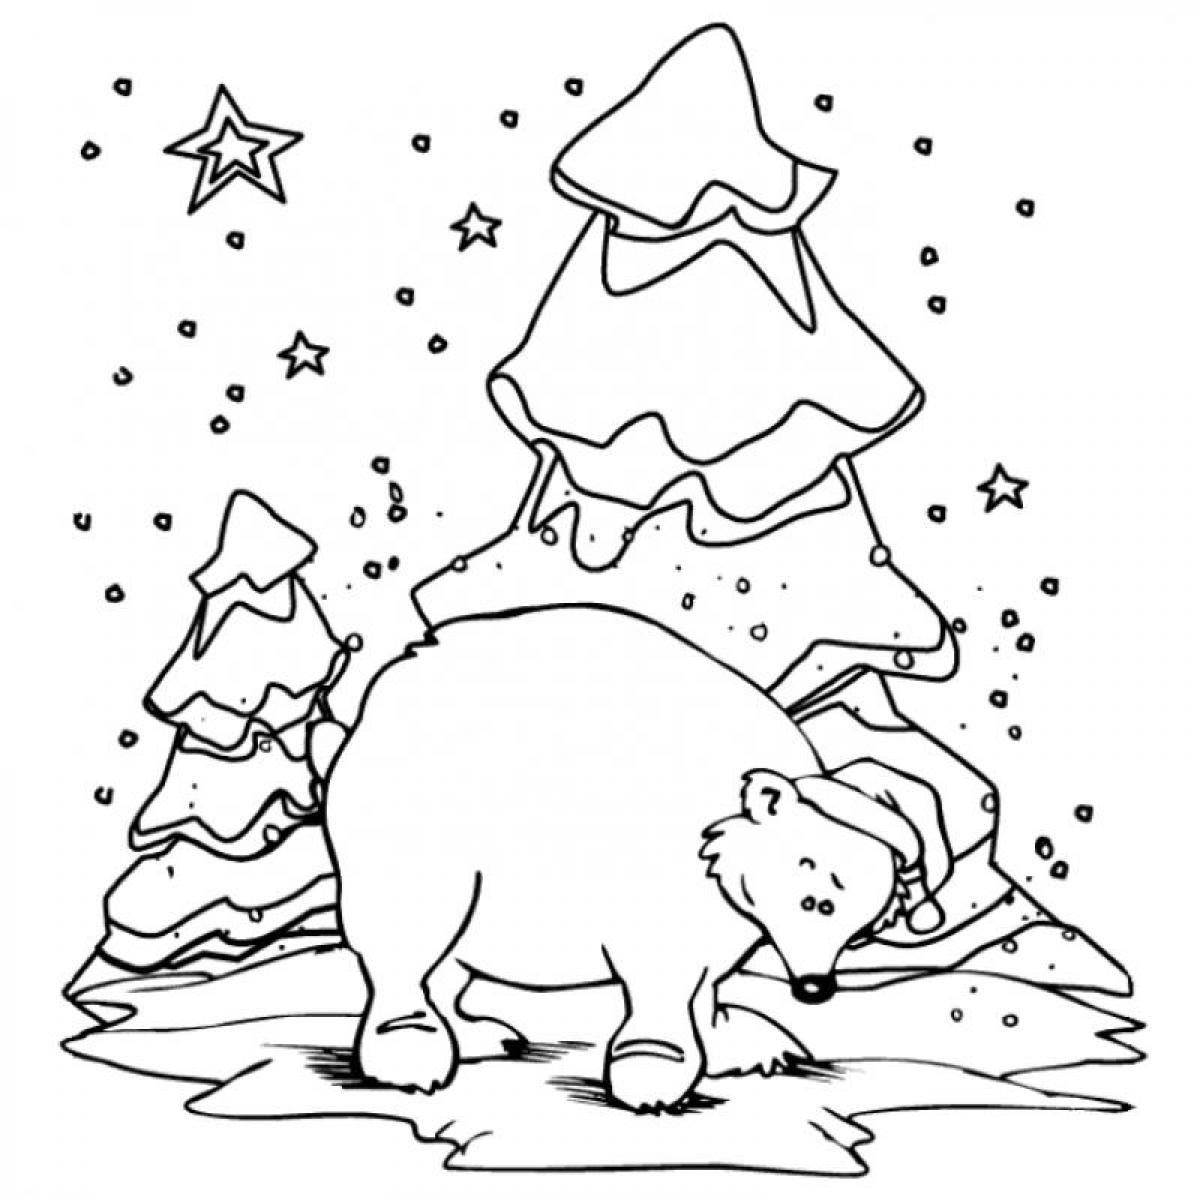 coloring page polar bear printable polar bear coloring page free pdf download at bear coloring page polar